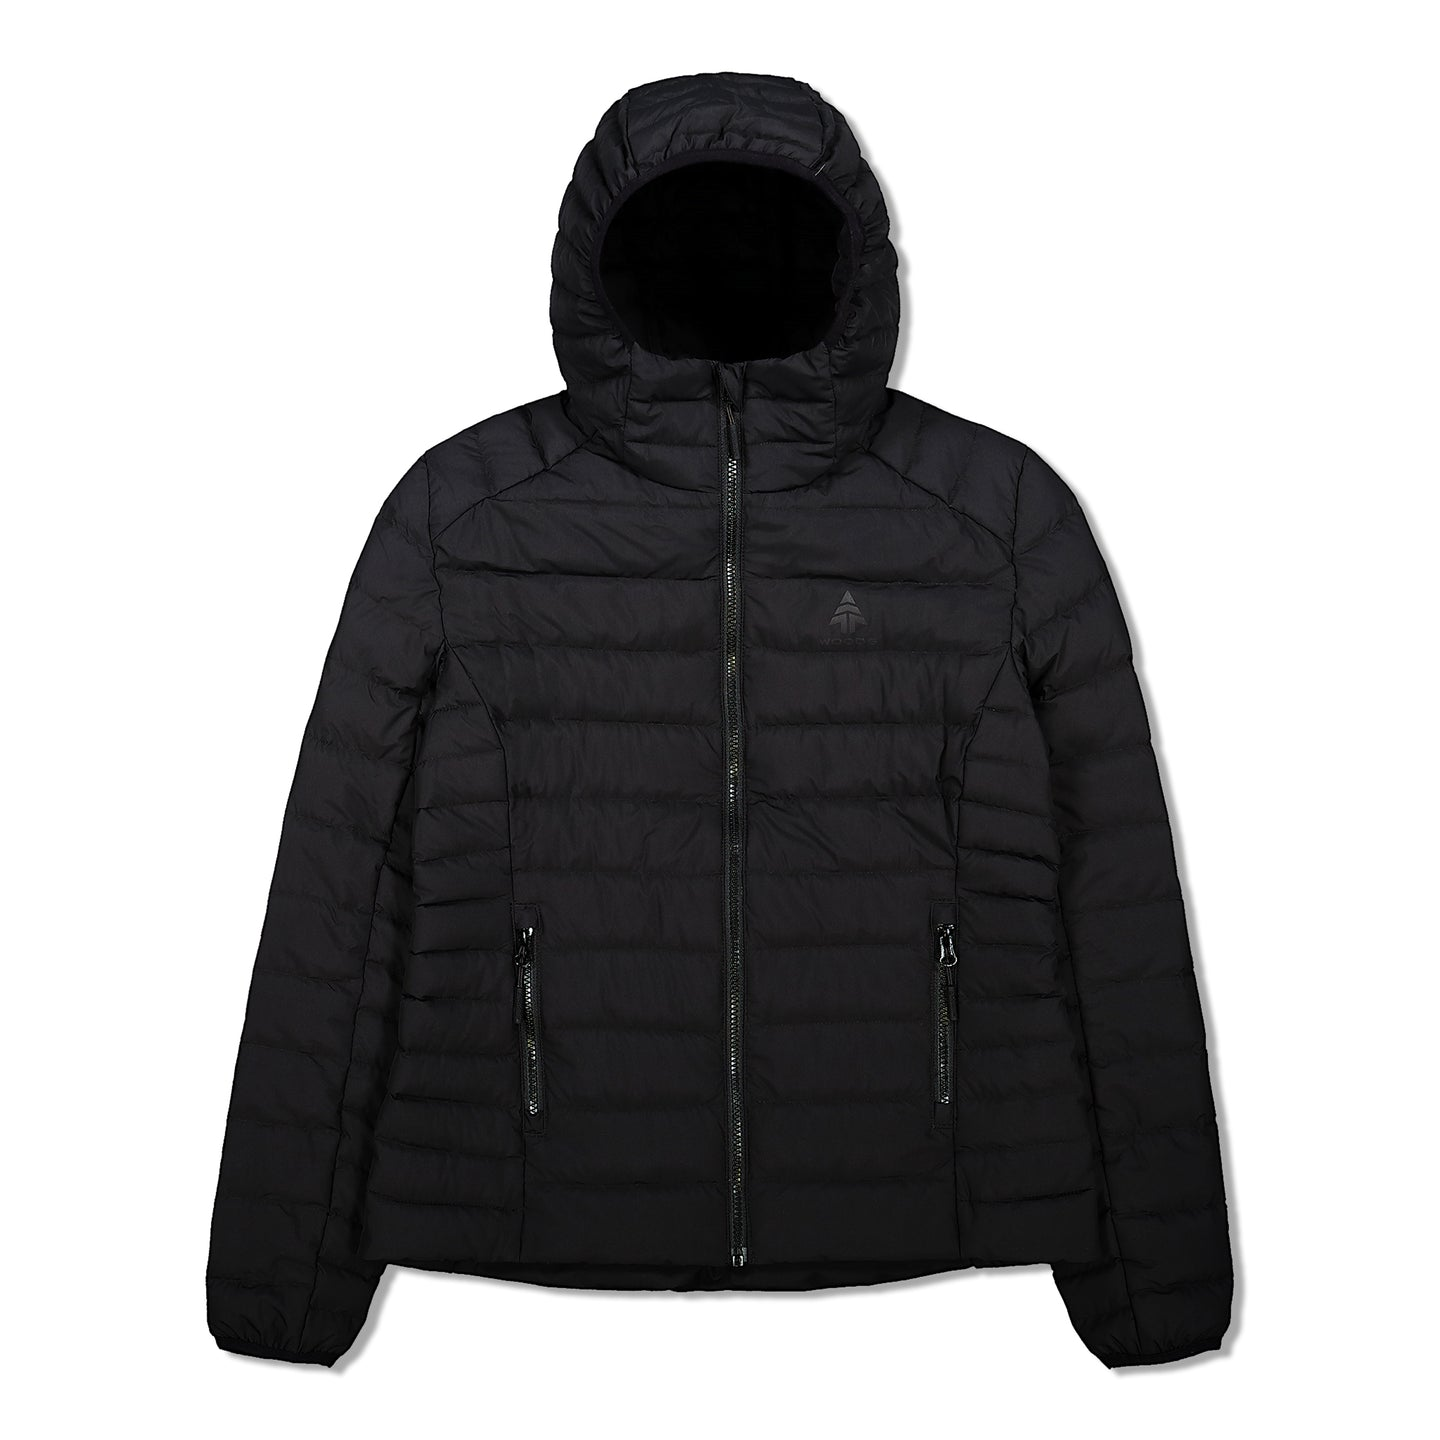 Woods Women's Bennington Water-Resistant Down-Insulated Hooded Puffer Jacket - Black